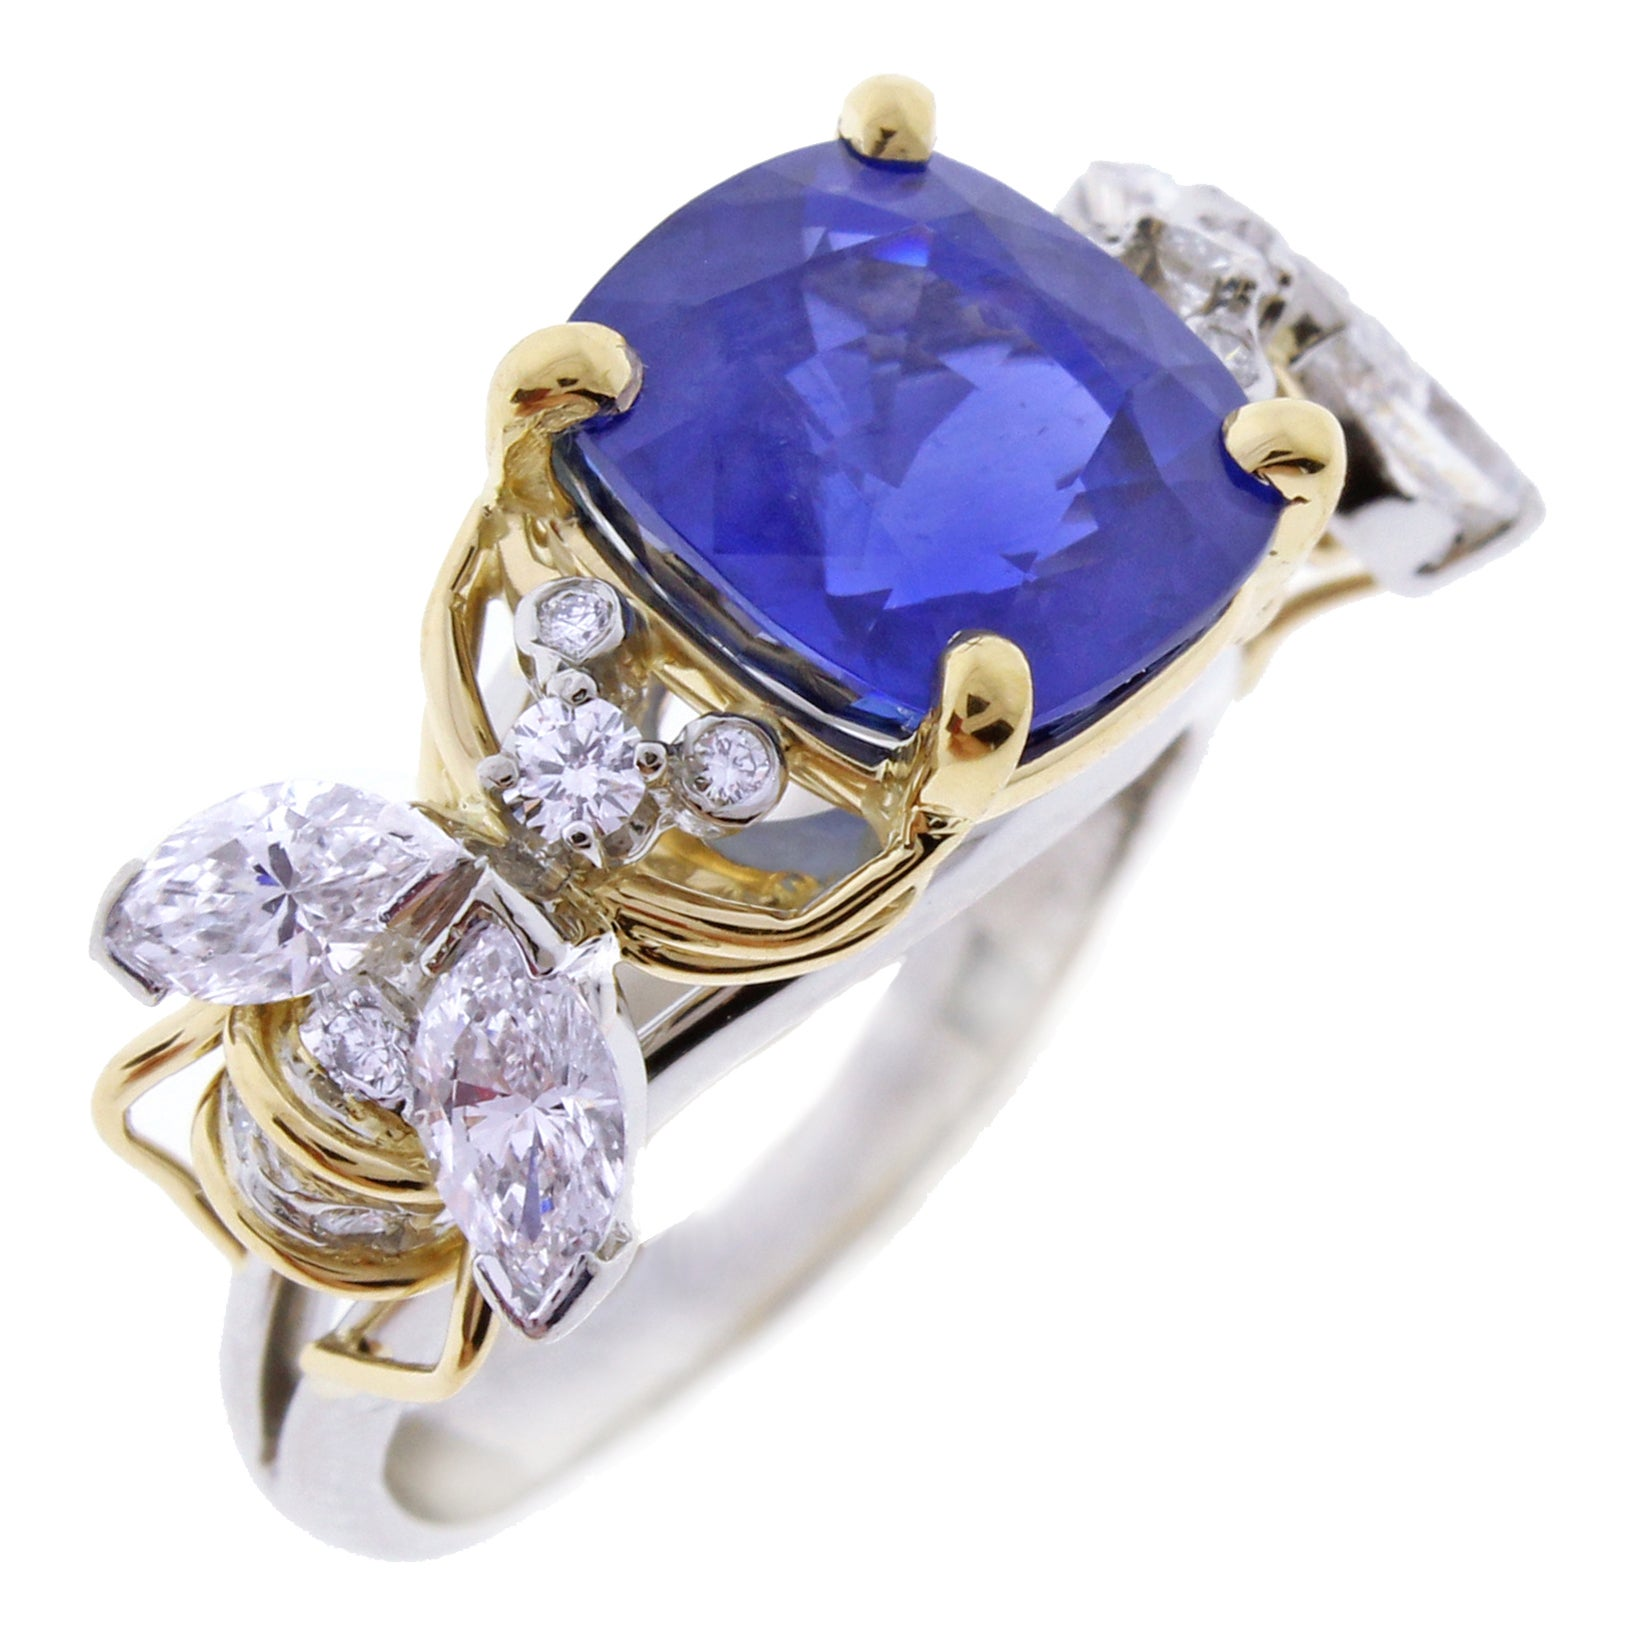 233e0b4c0 Tiffany and Co. Schlumberger Burma Unheated Sapphire Diamond Gold Two Bees  Ring at 1stdibs